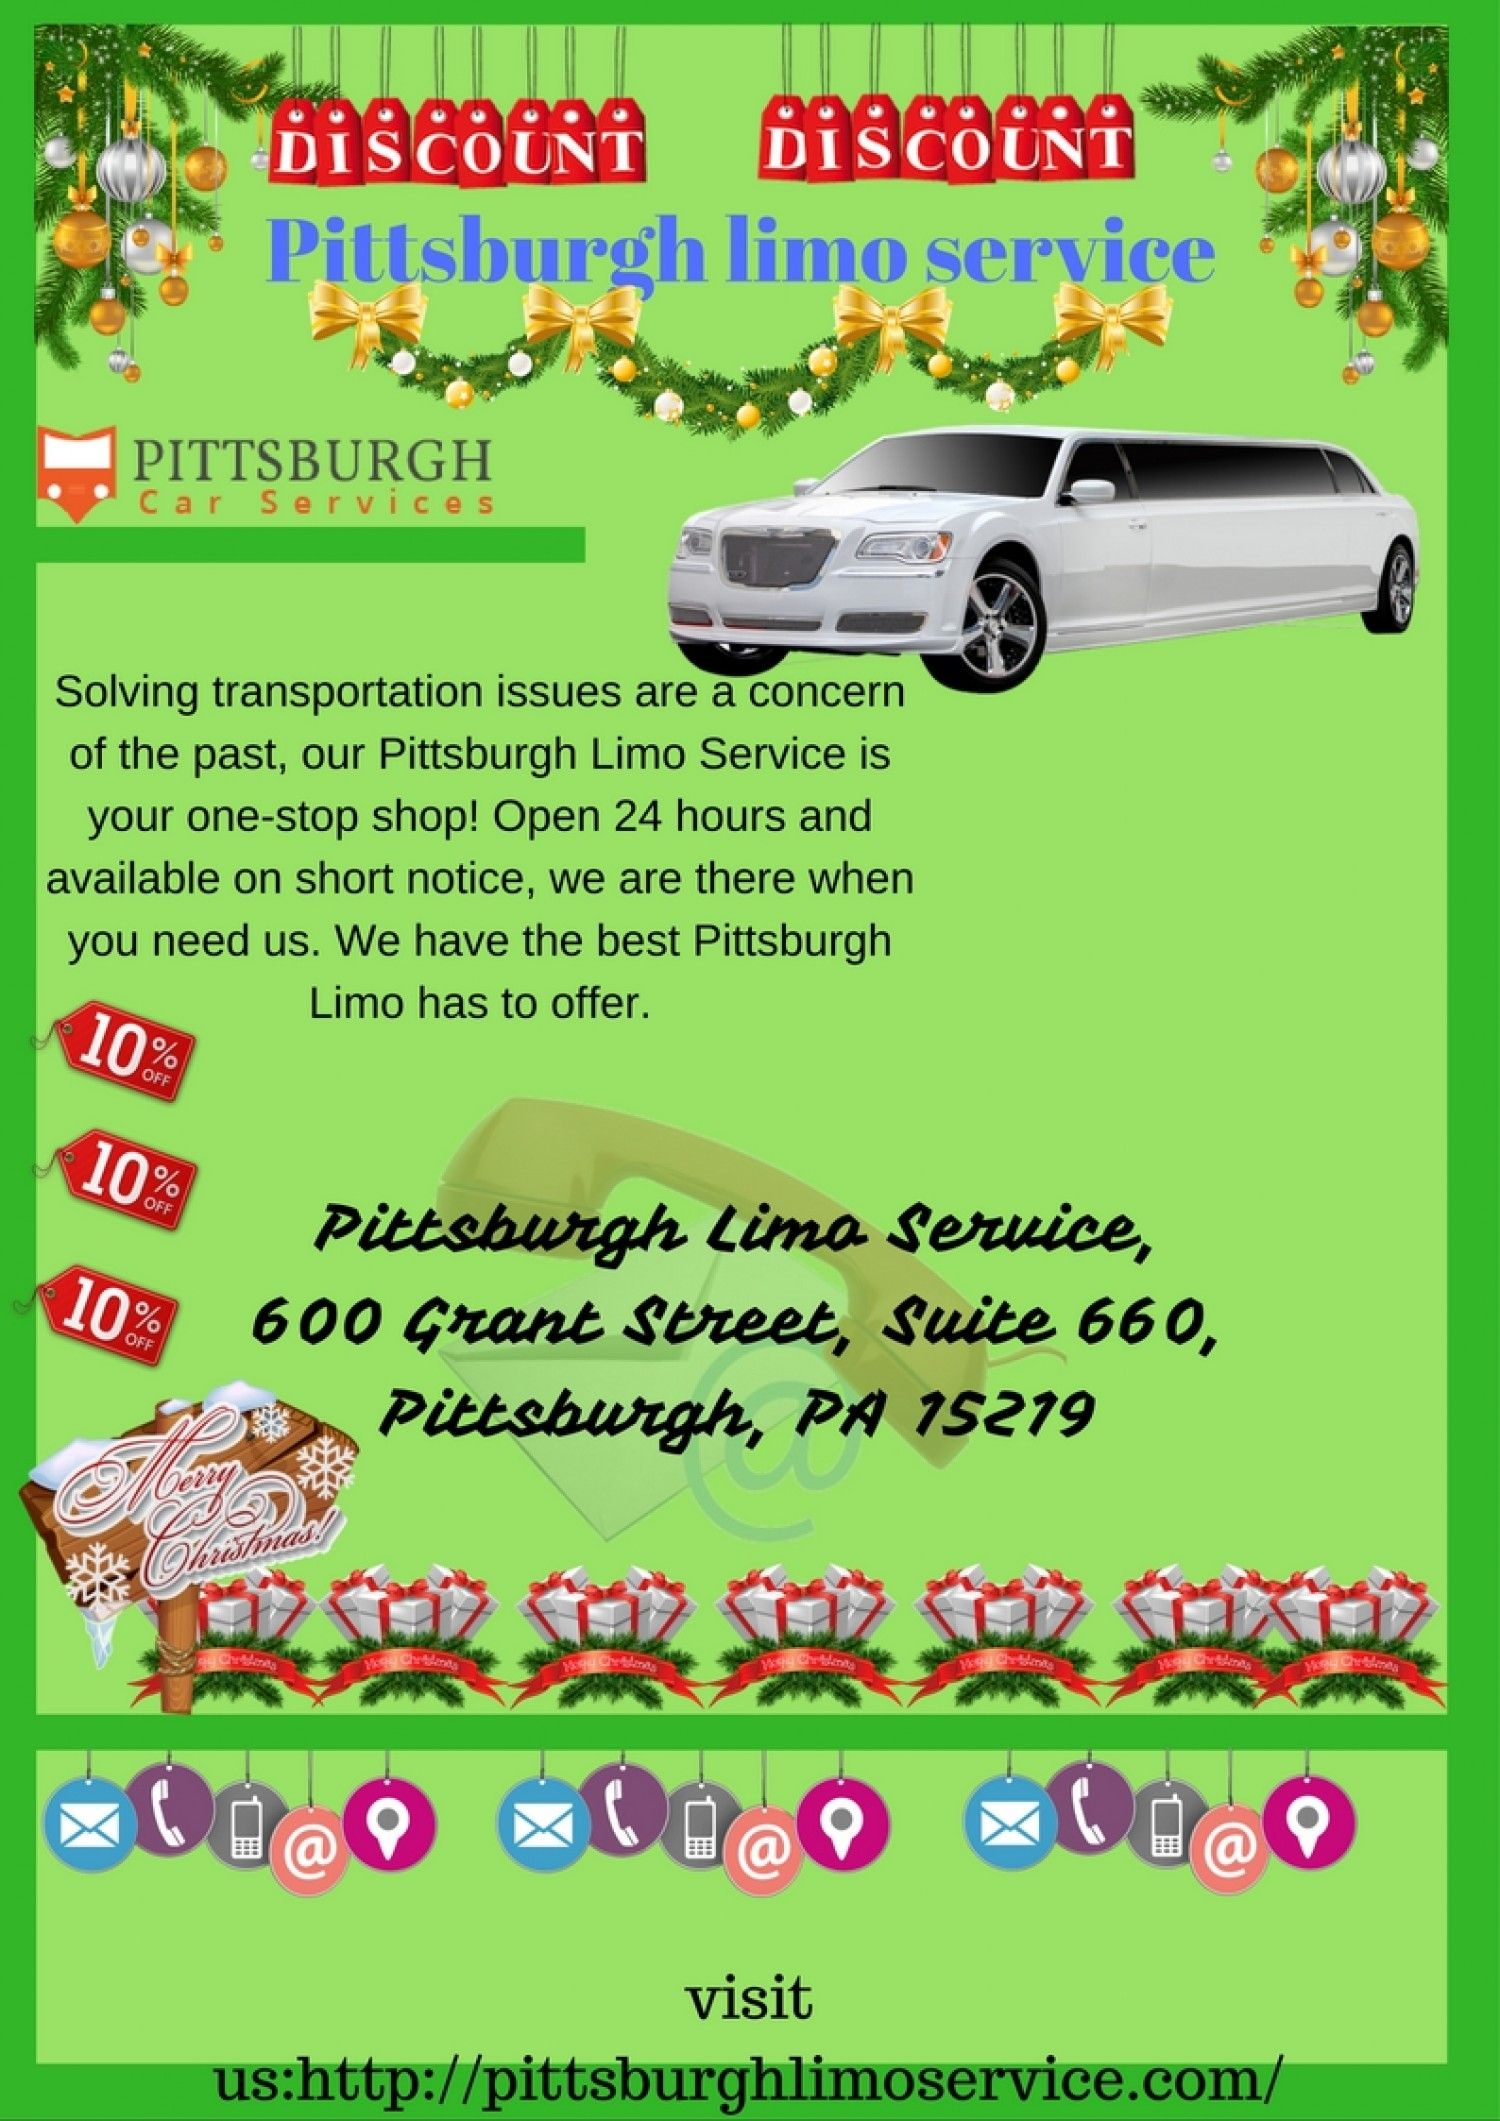 Christmas light tour Party Bus Pittsburgh Infographic